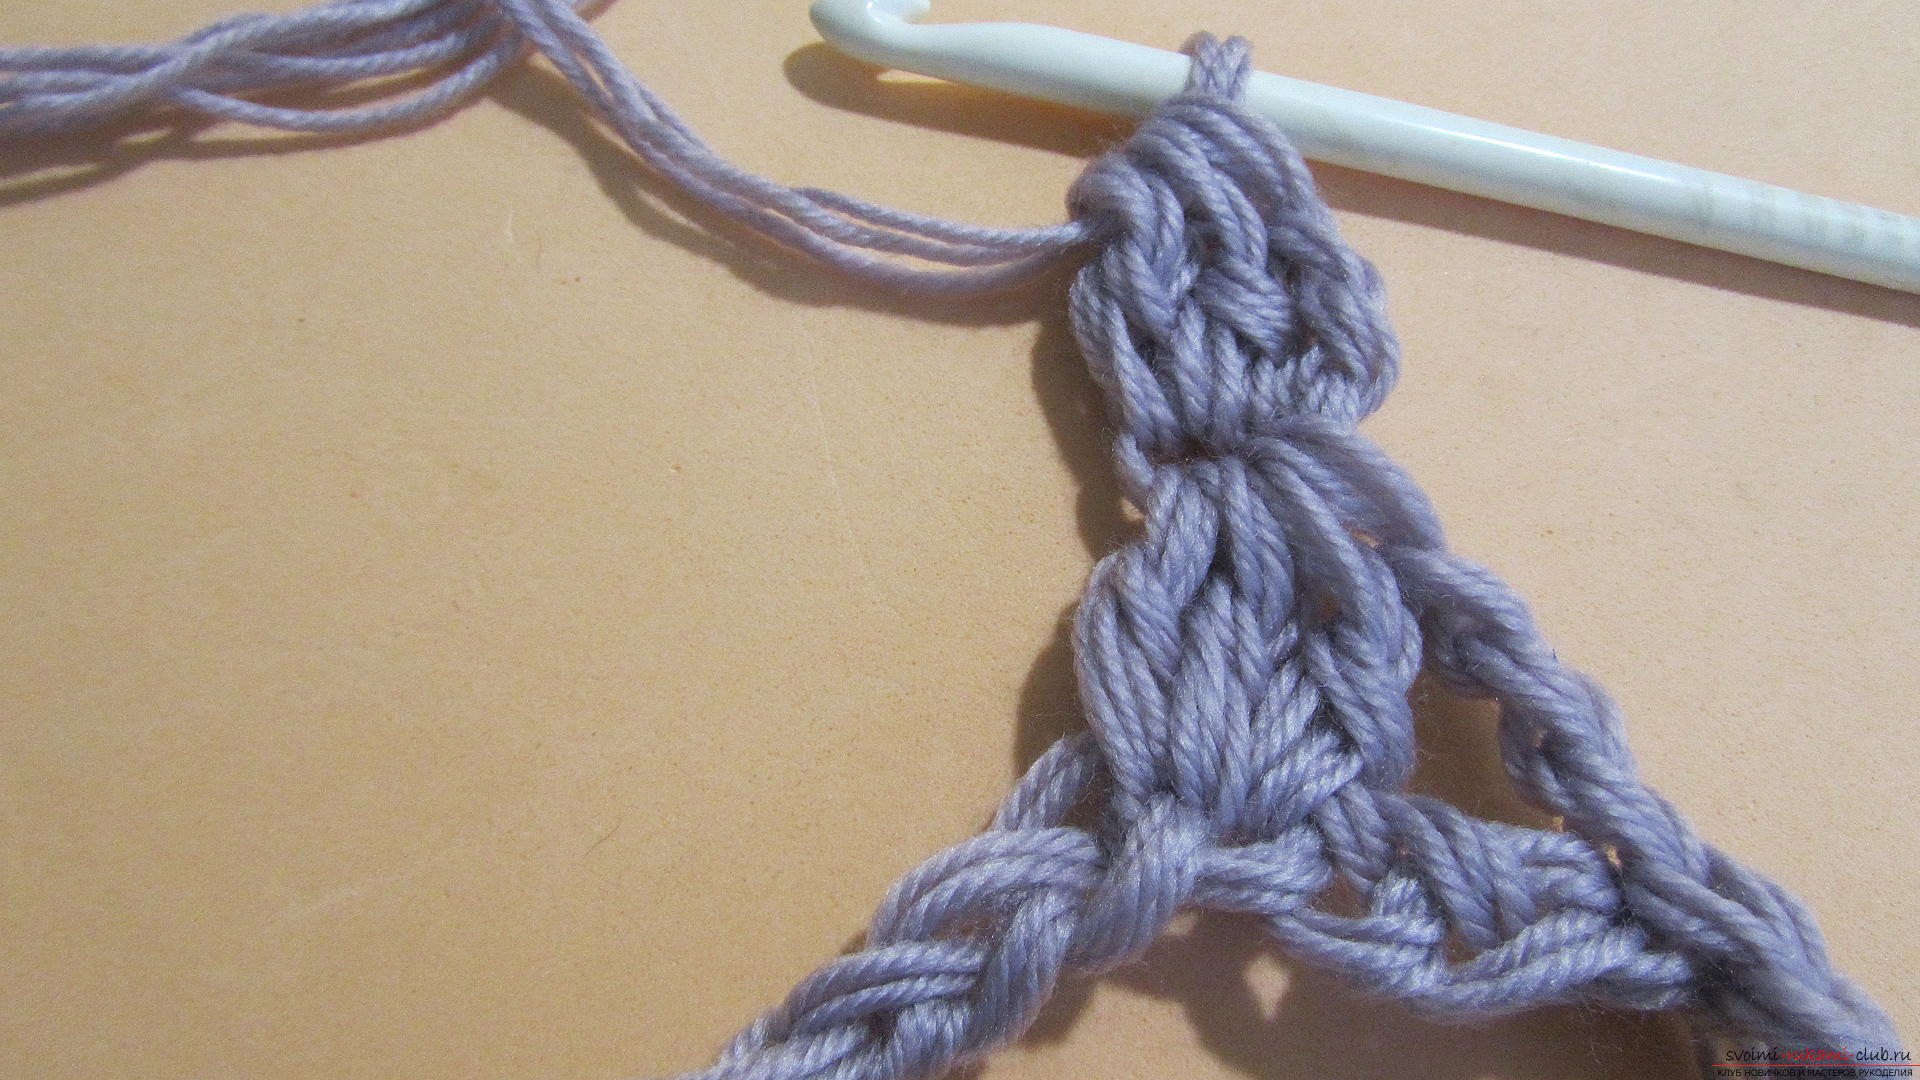 This detailed master class with a photo contains crochet snatch crochet patterns.